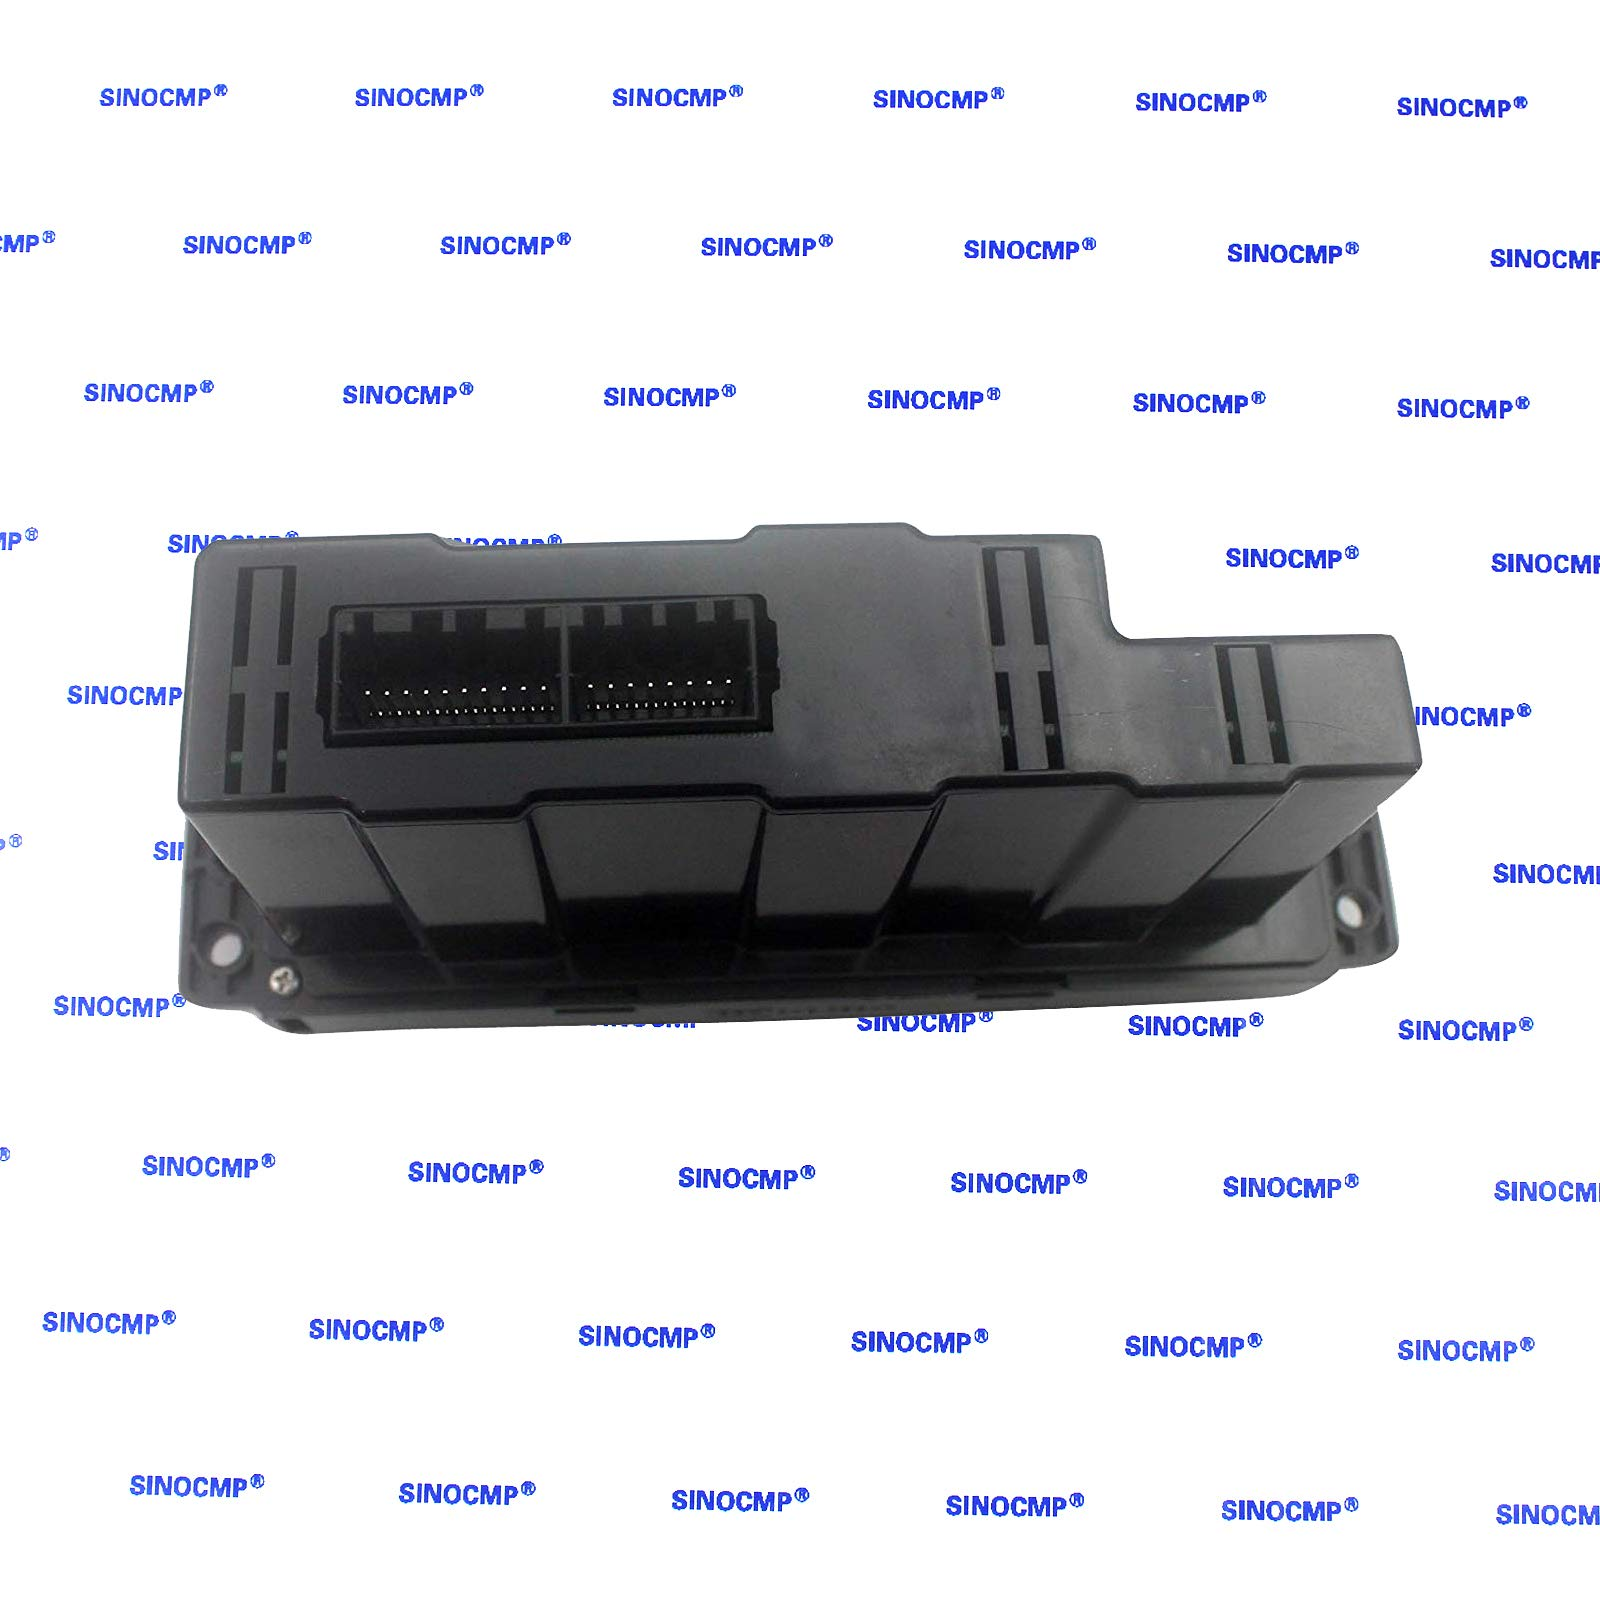 SINOCMP Air Conditioning Controller for Hitachi ZX200-1 Excavator Parts 4713662 4692239 4426048 A//C Control Panel 24V 6 Month Warranty